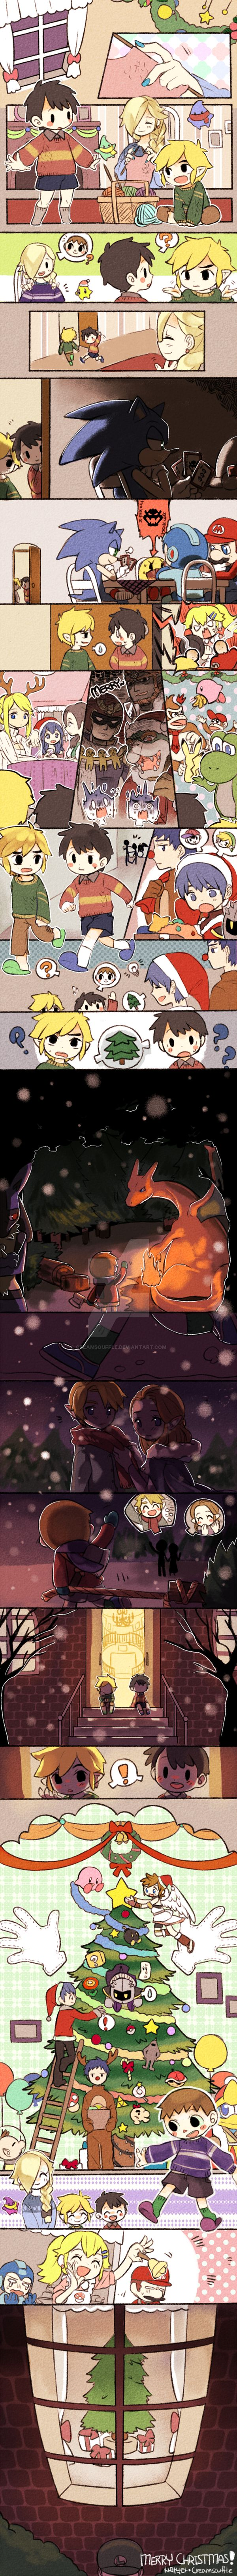 Super Smash Bros 4 - Merry Christmas! by Creamsouffle on DeviantArt